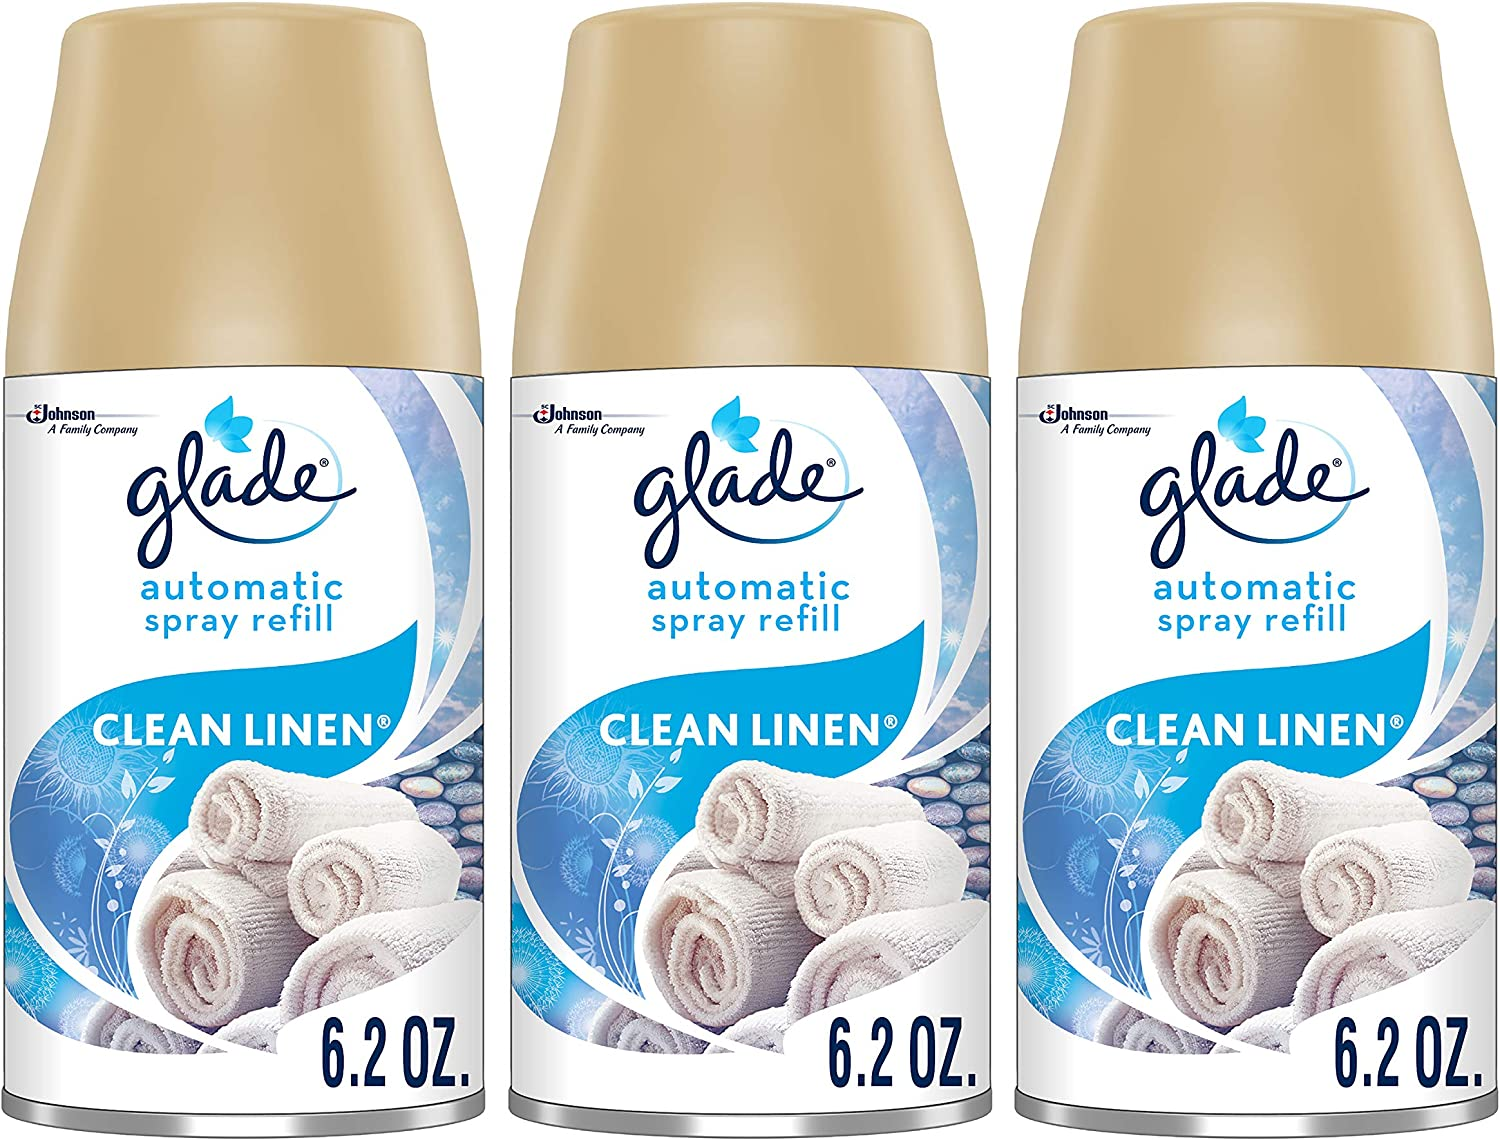 Glade Automatic Spray Refill Clean Linen, Fits in Holder for Up to 60 Days of Freshness, 6.2 oz, Pack of 3